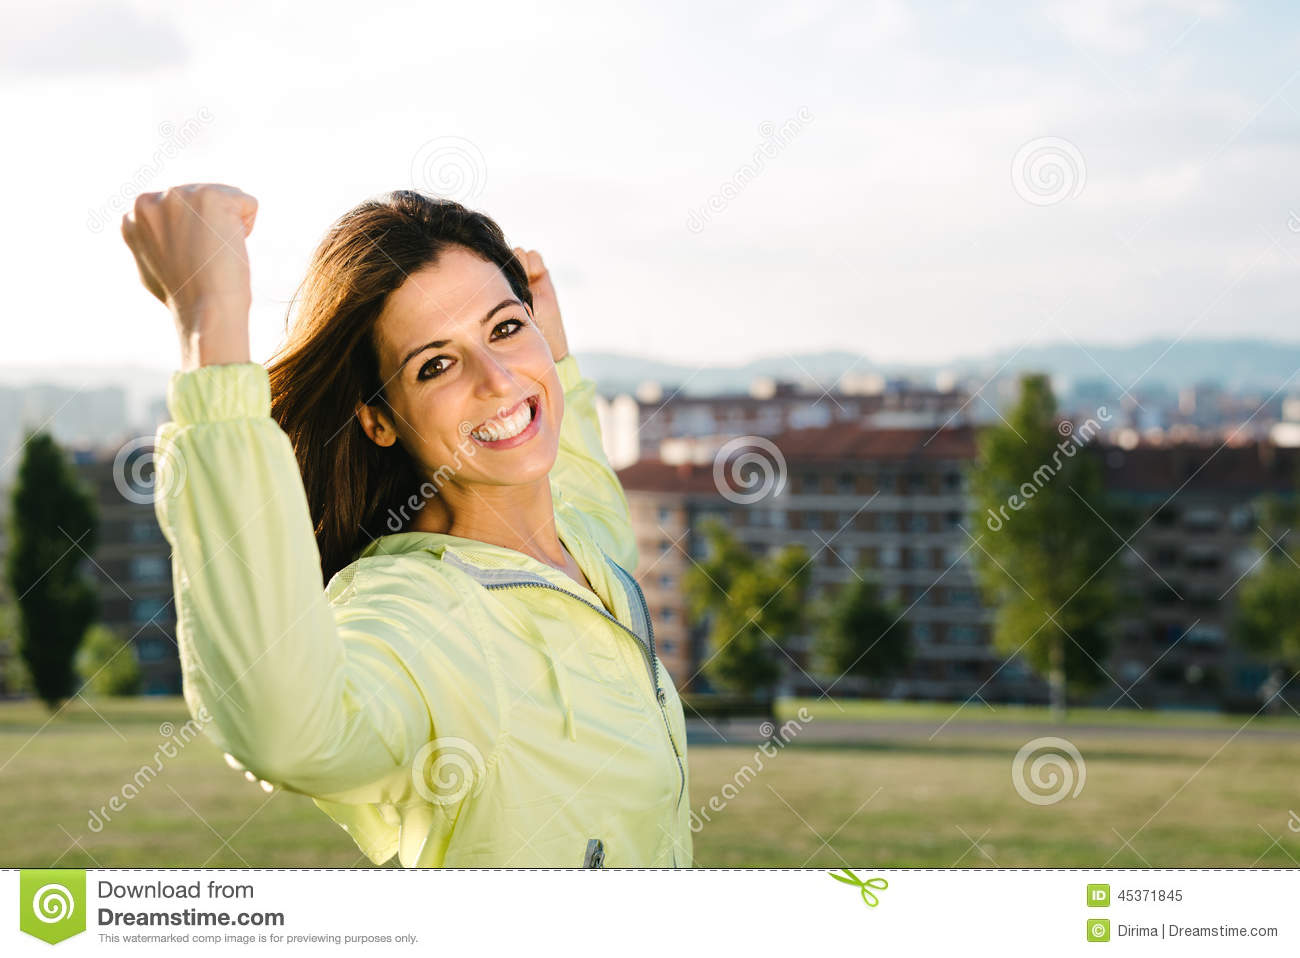 Woman Celebrating Sport And Fitness Lifestyle Success And